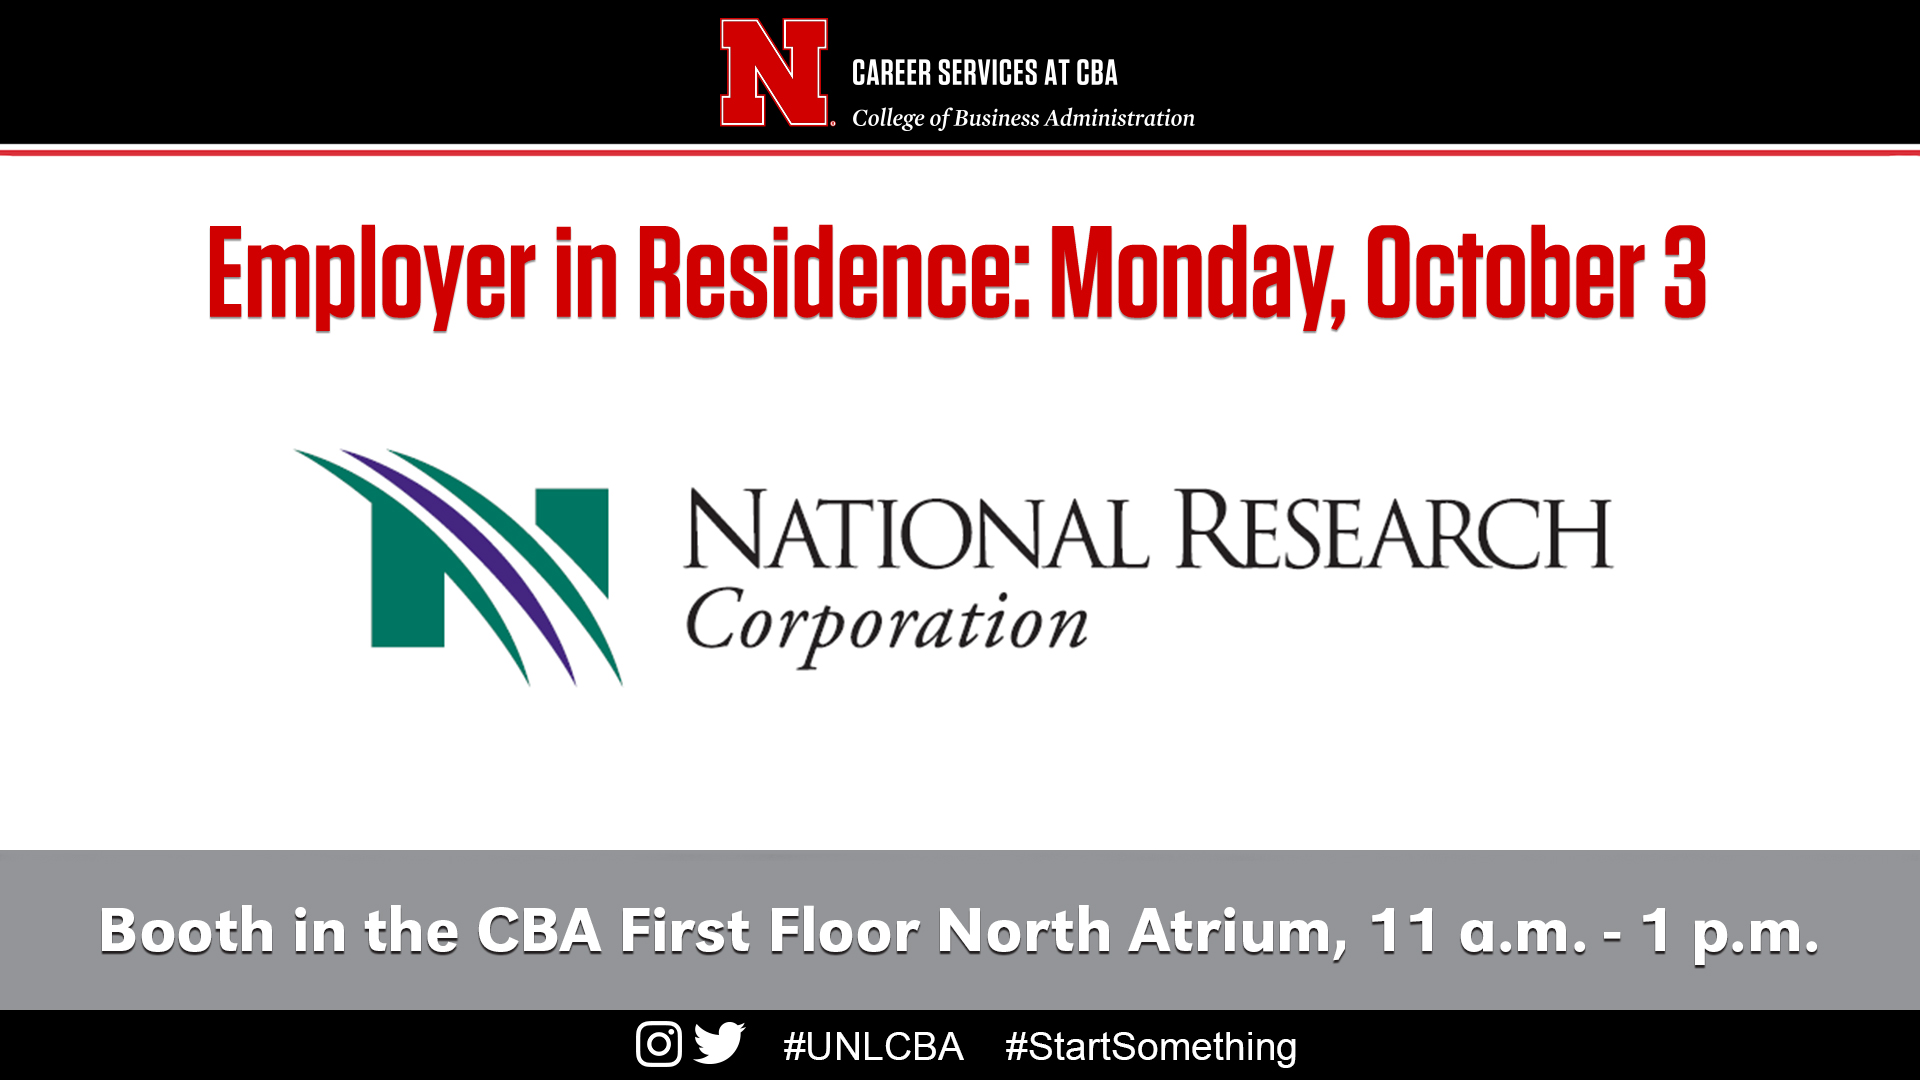 Monday October 3 National Research Corporation